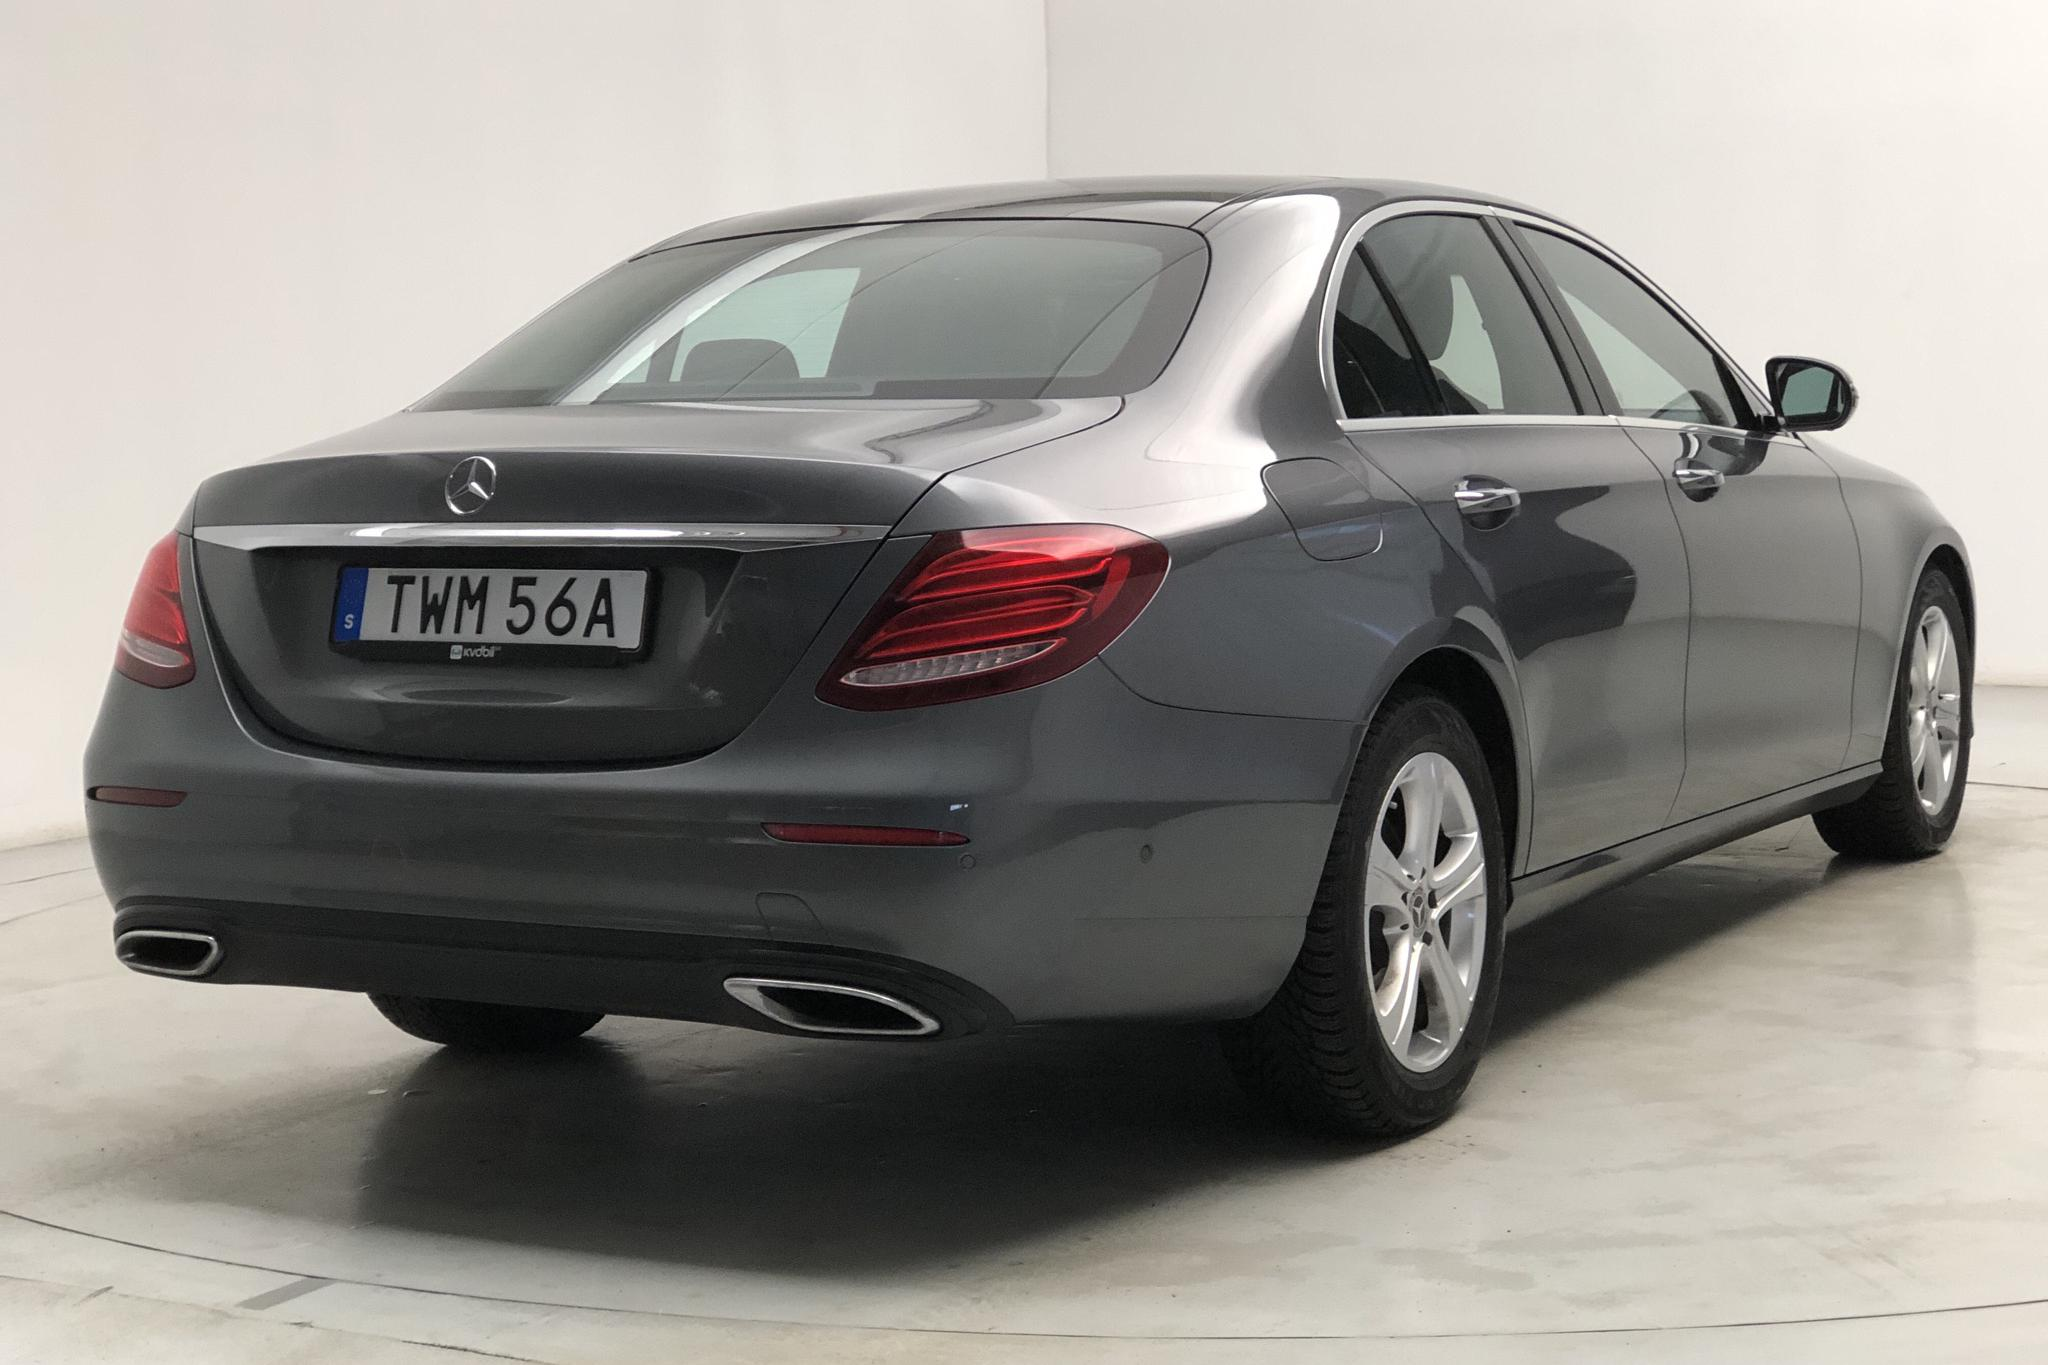 Mercedes E 220 d HVO Sedan W213 (163hk) - 14 170 km - Automatic - gray - 2020